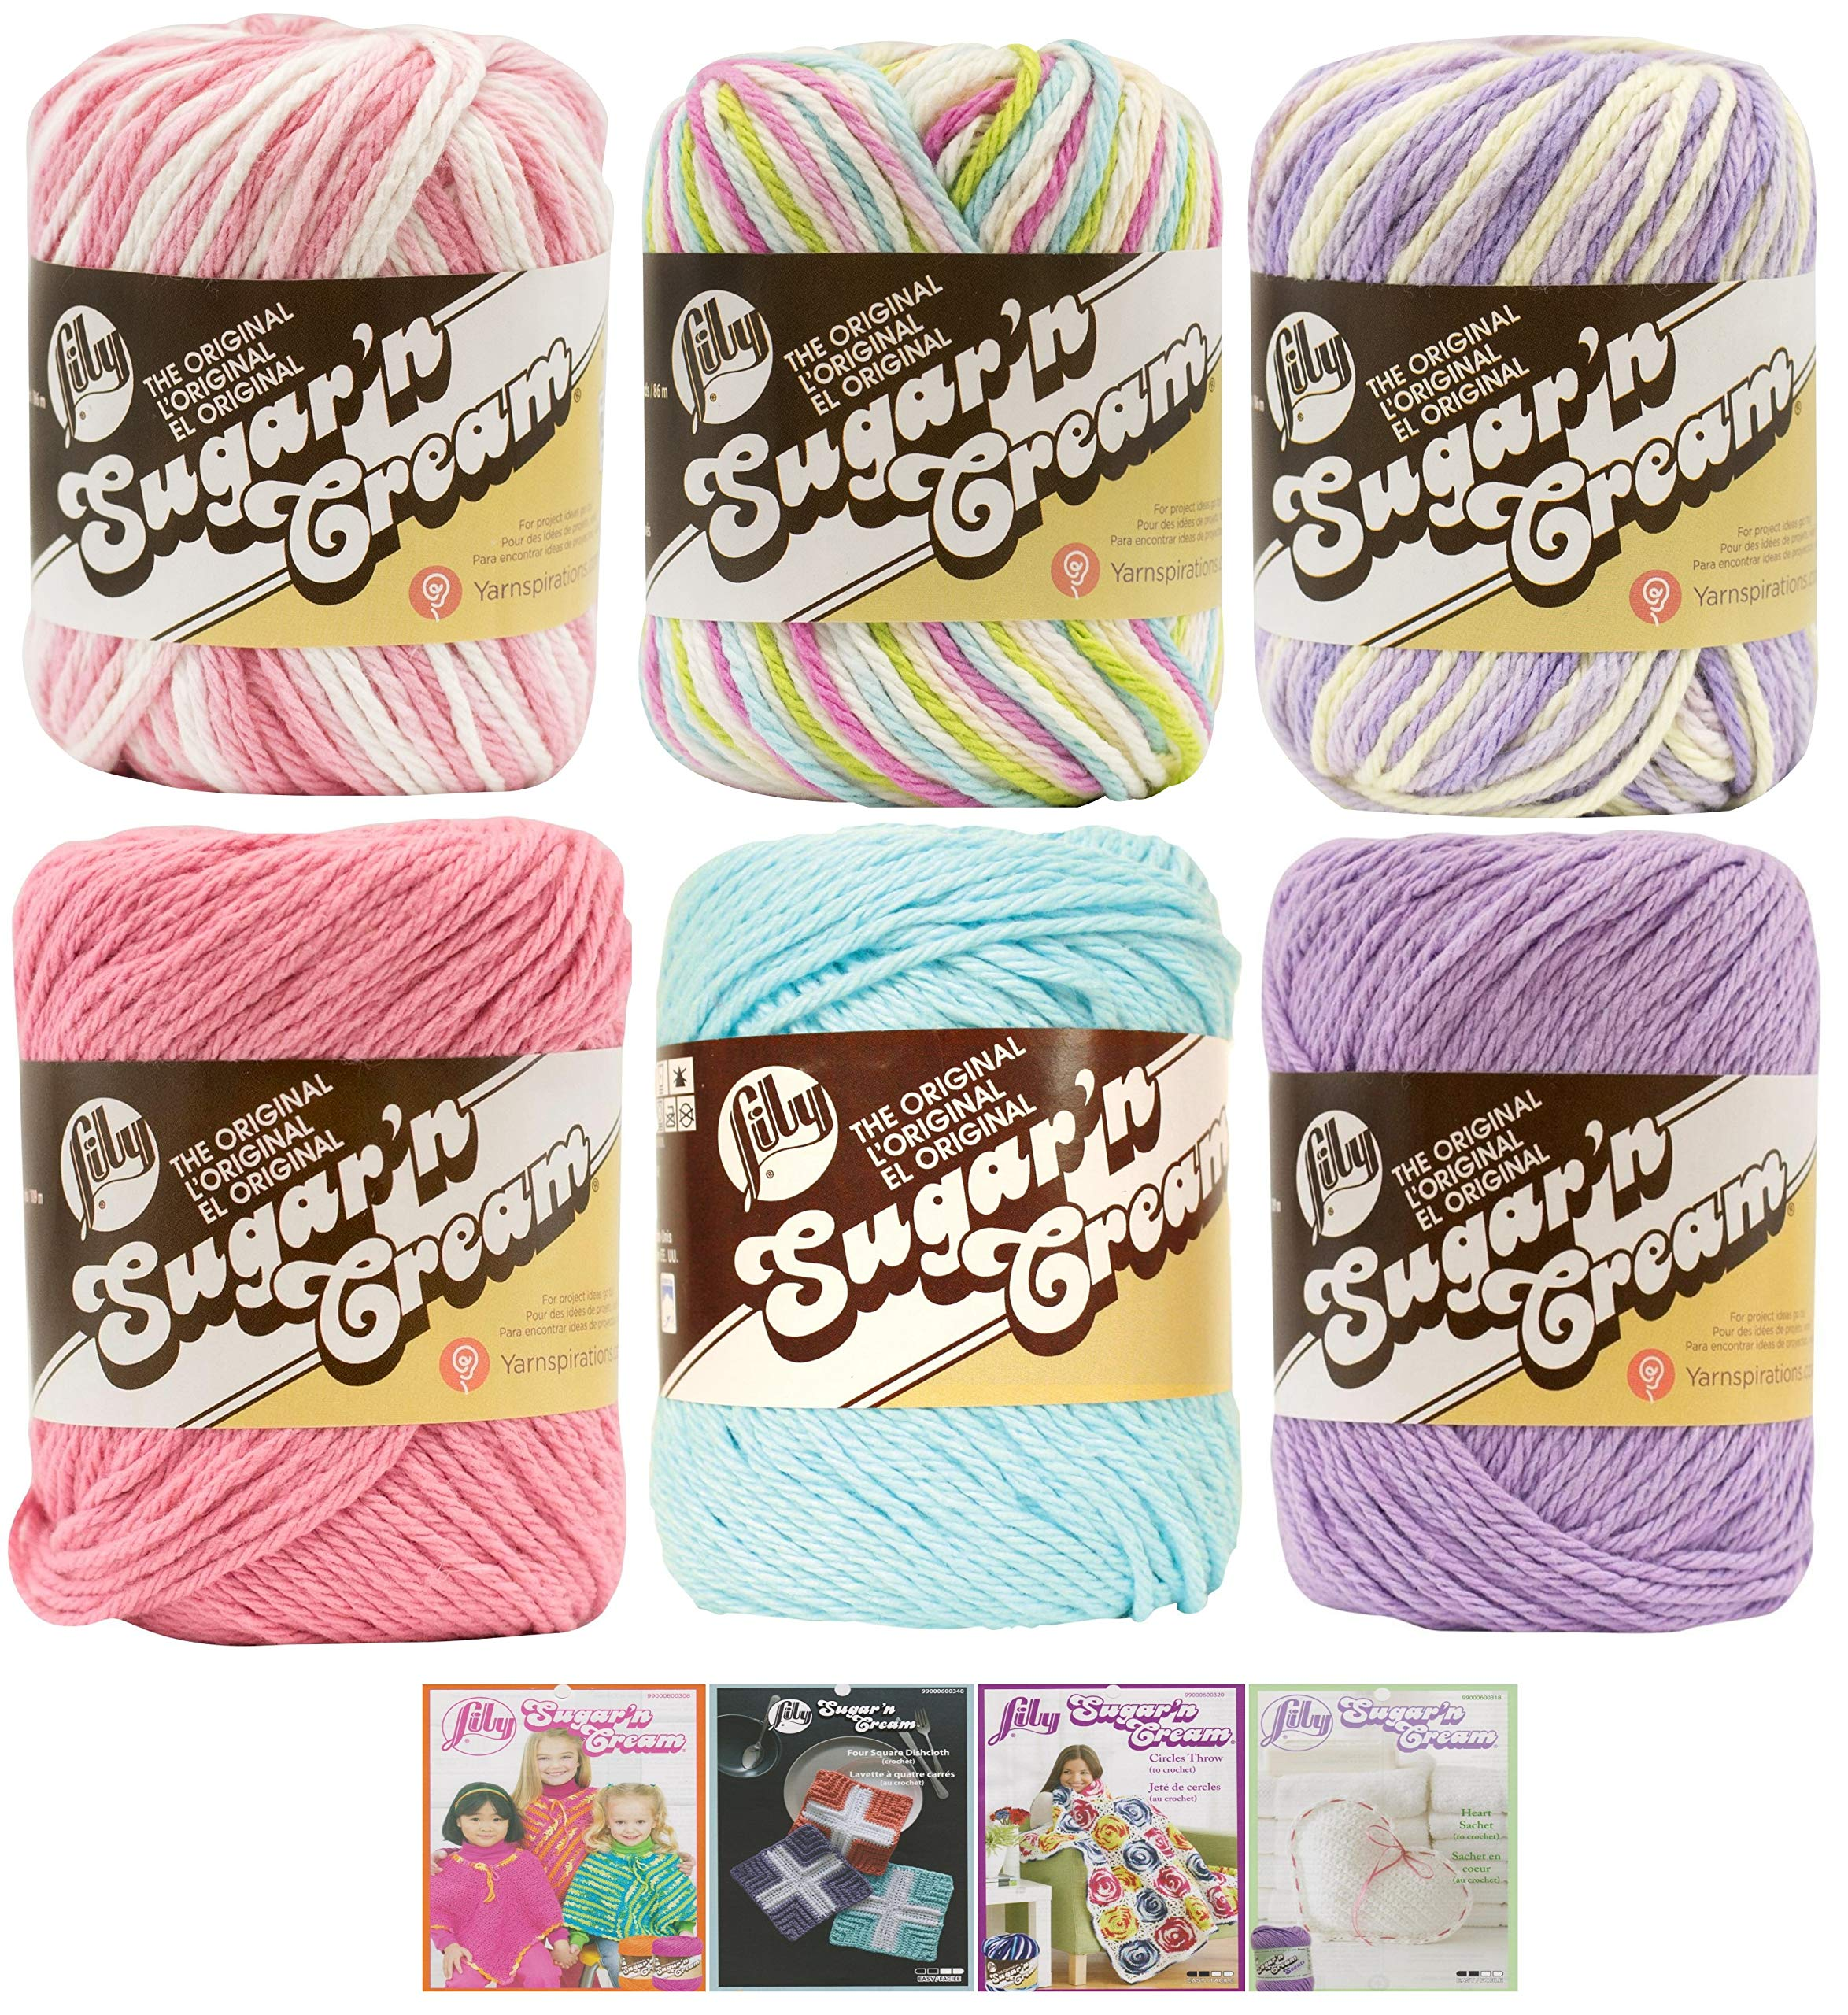 Variety Assortment Lily Sugar'n Cream Yarn 100 Percent Cotton Solids and Ombres (6-Pack) Medium Number 4 Worsted Bundle with 4 Patterns (Asst AA)